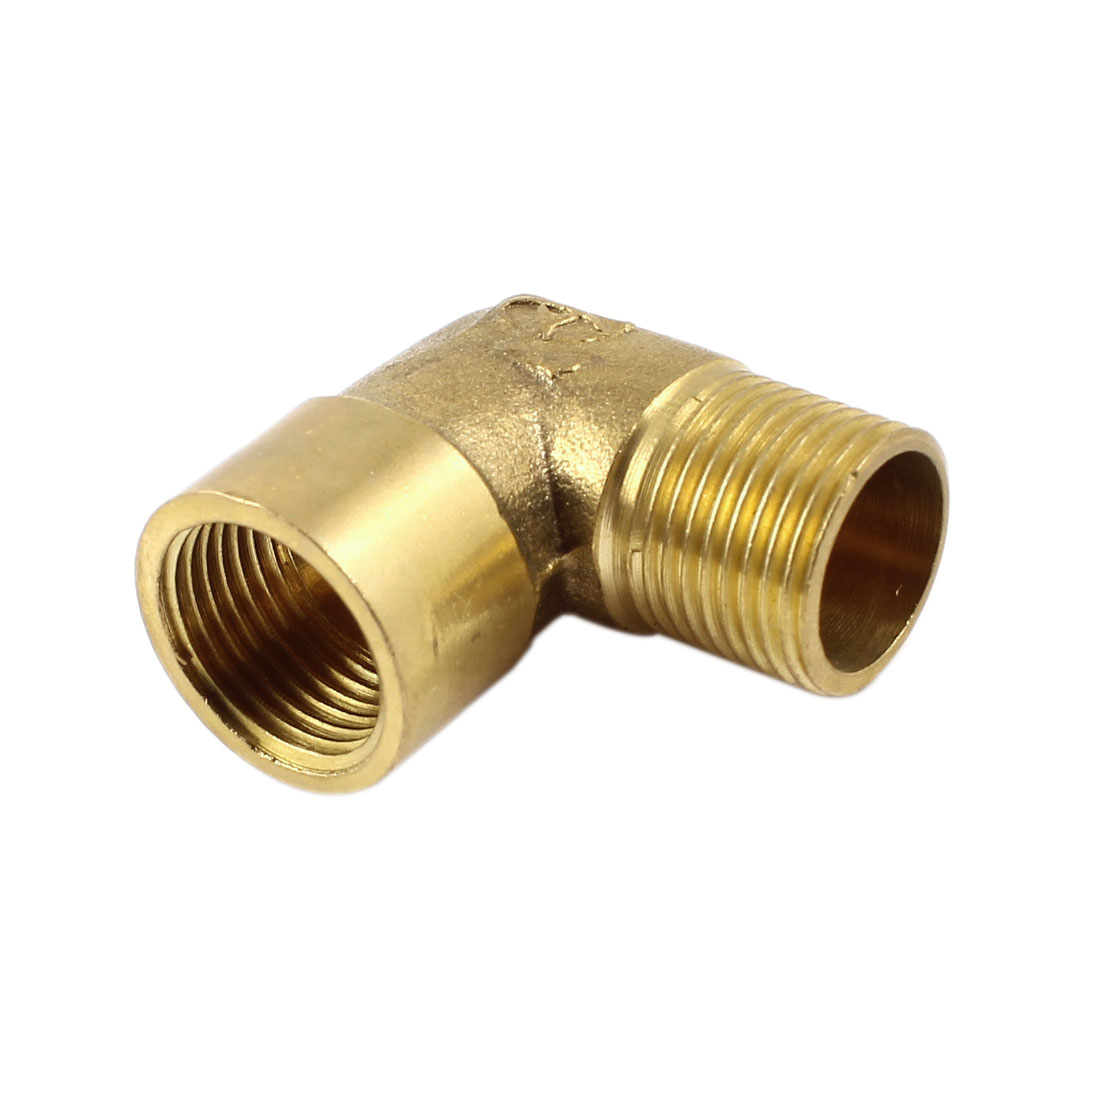 Brass Tone 90 Degree Elbow 3/8 PT Male to 3/8 PT Female Pipe Fitting Coupler